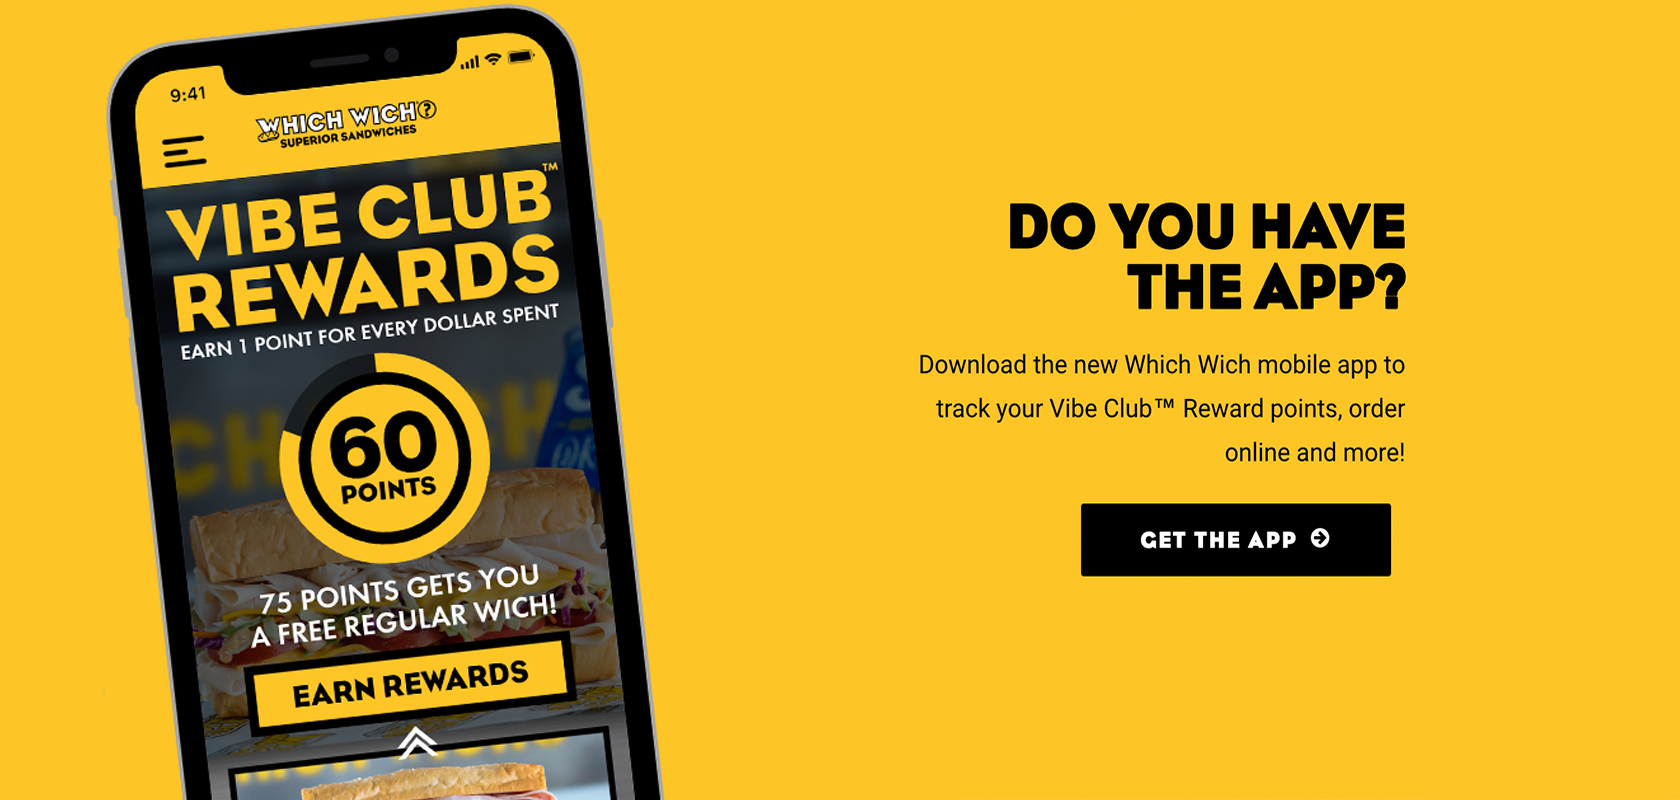 Do you have the app? Download the new Which Wich mobile app to track your Vibe Club Reward points, order online and more!